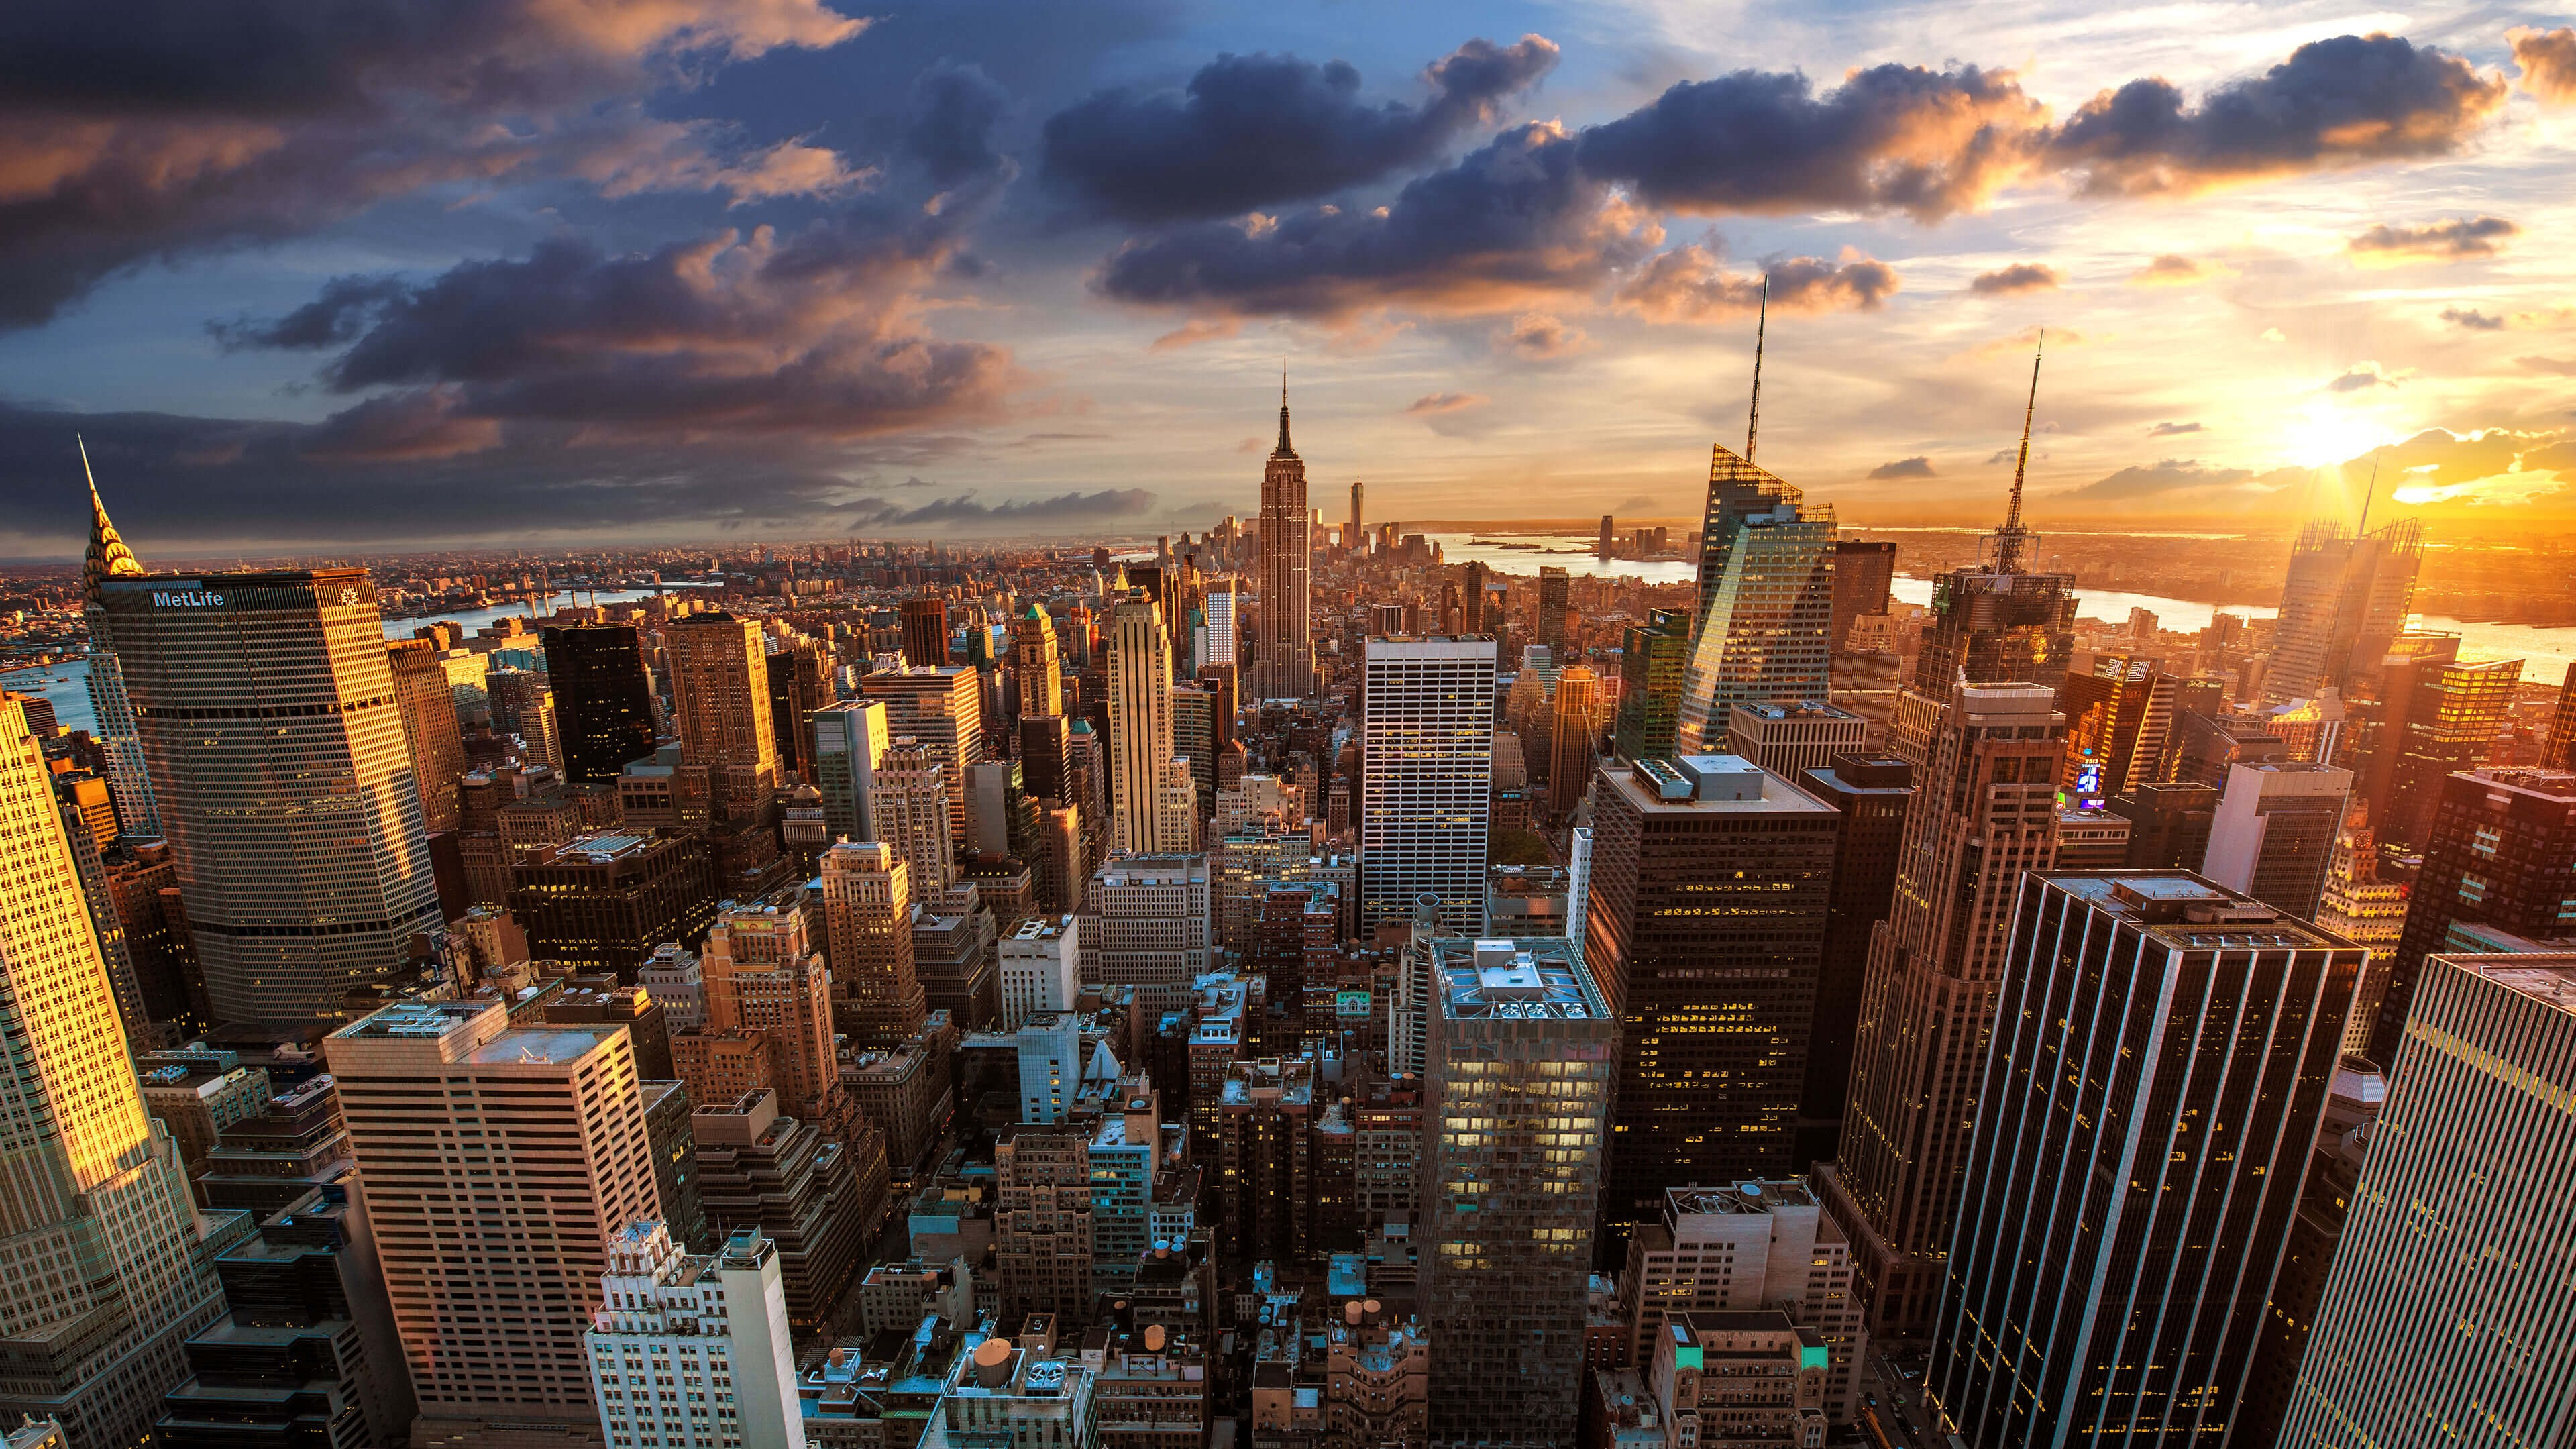 New York City Skyline At Sunset Wallpaper for Desktop 4K 3840 x 2160 3840x2160